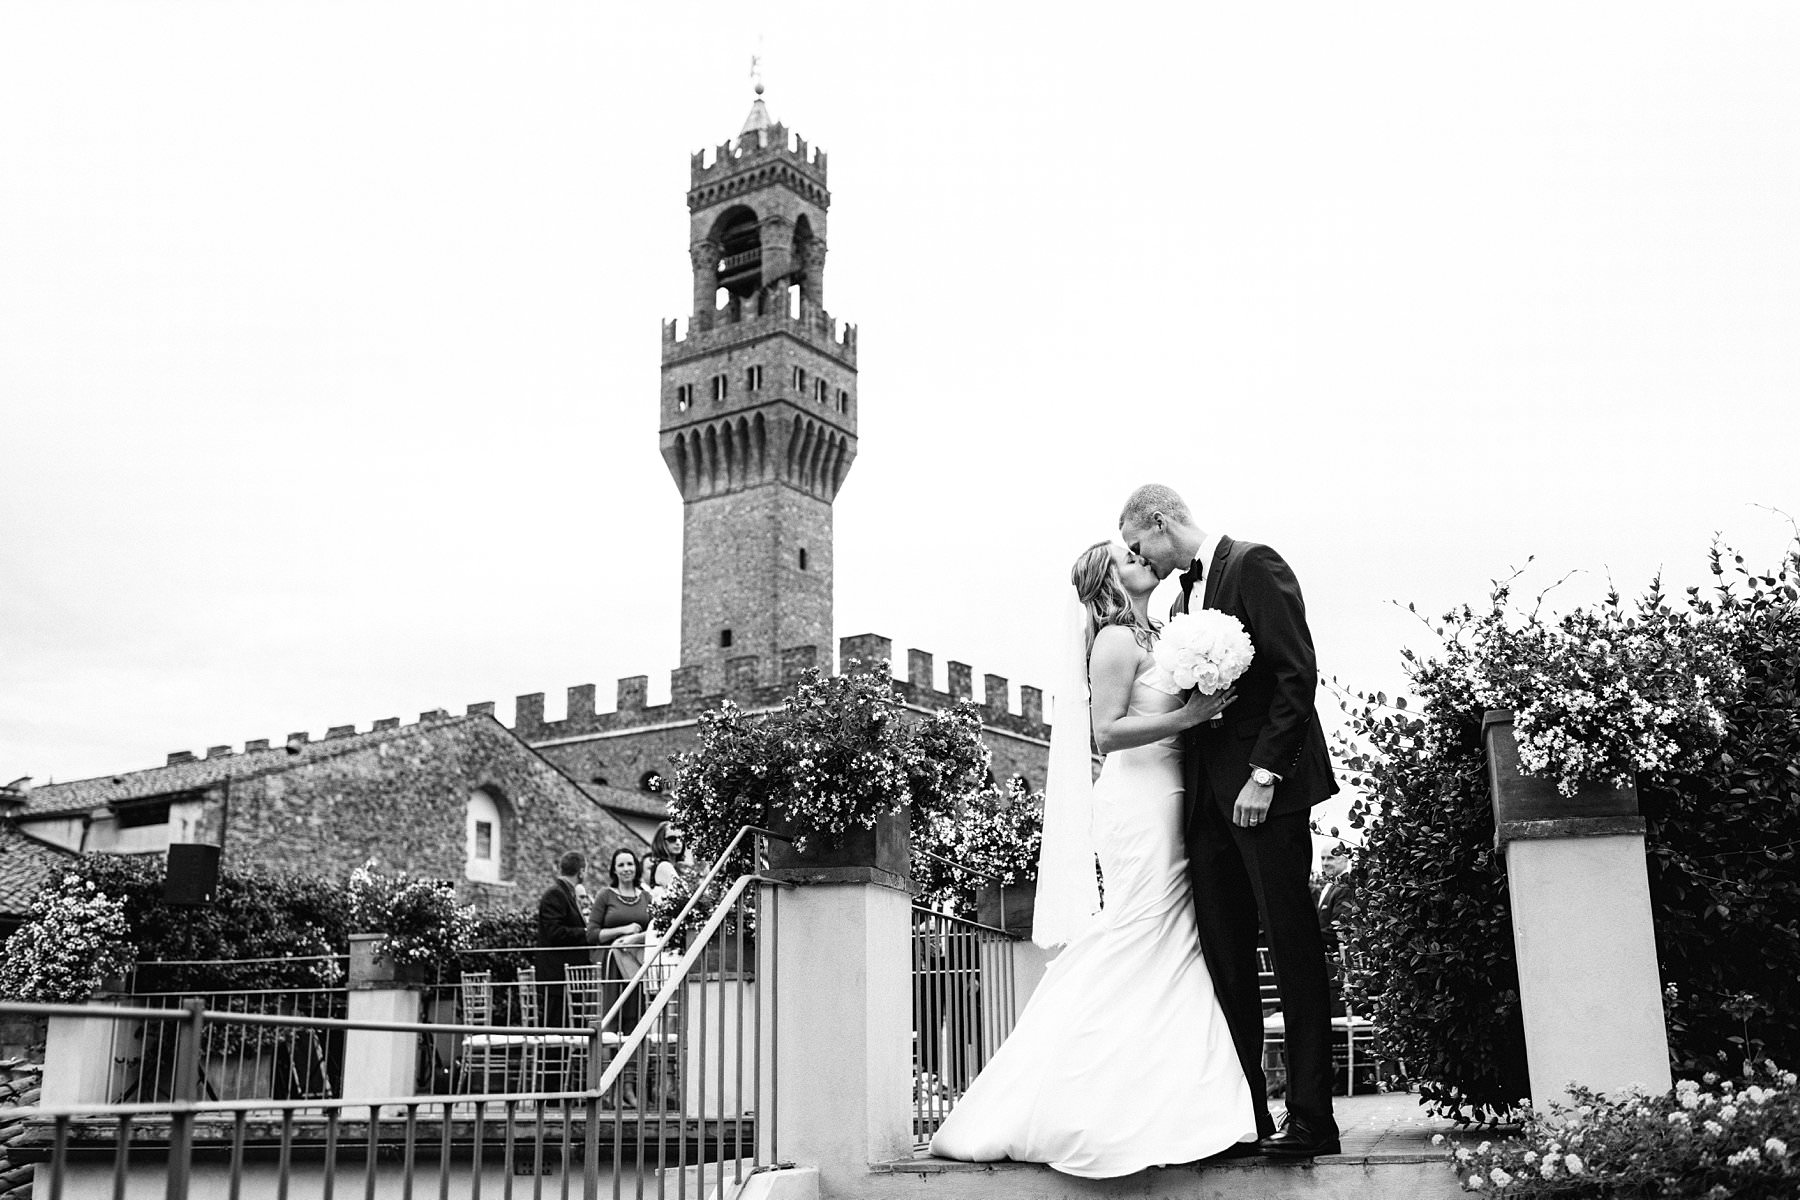 Palazzo Gondi and Grand Hotel Cavour, the best of Florence. This beautiful American couple opted for the most elegant and exclusive venues for their exquisite wedding: Grand Hotel Cavour, where they got ready, and Palazzo Gondi, where the ceremony and reception took place. The latter is especially unique: it's one of the most renowned Renaissance palaces in Florence, and it's open to guests only on special occasions. A real hidden treasure located in the very heart of the historical center, next to Palazzo della Signoria. It's no surprise that the terrace – that hosted the wedding ceremony – offers an incredible view of the Duomo and Palazzo Vecchio